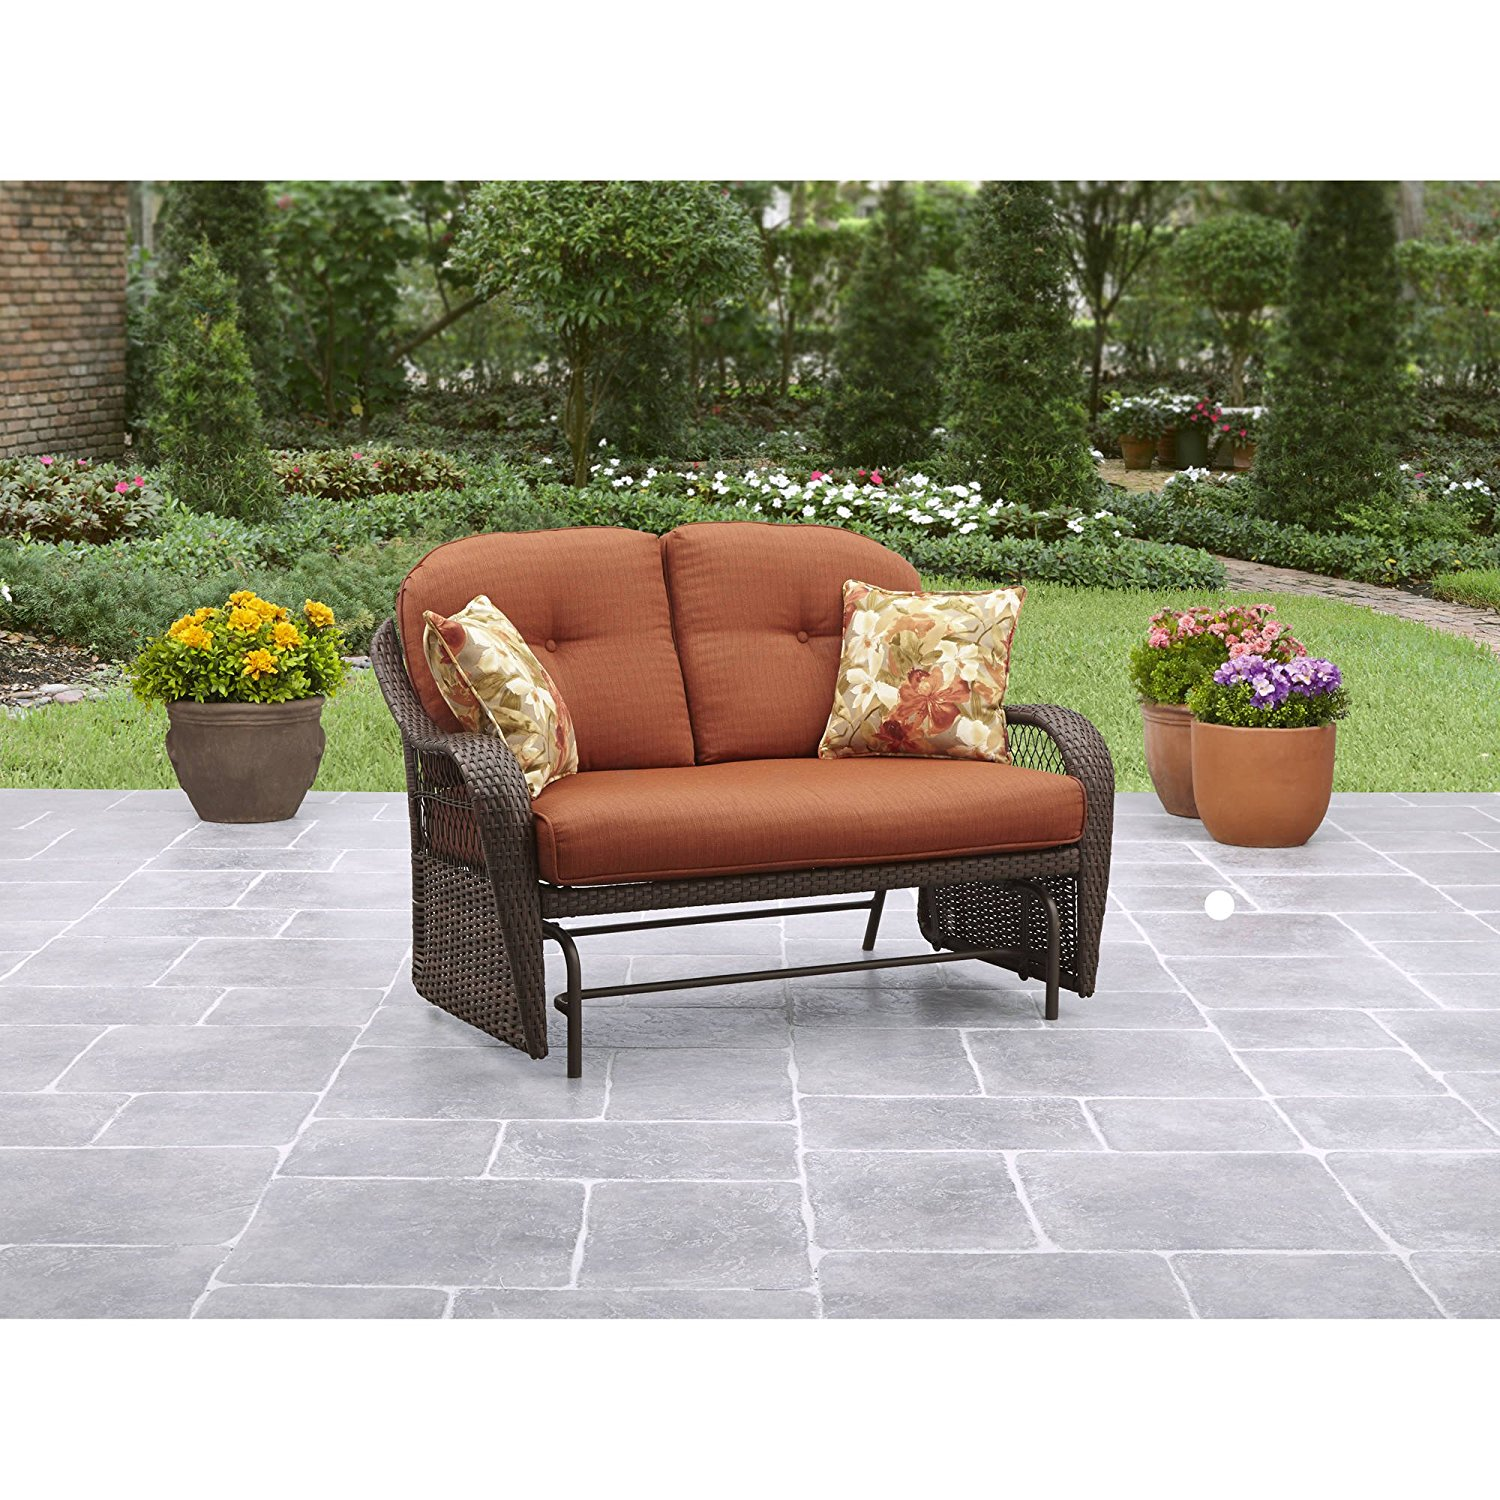 Get quotations · stylish outdoor patio glider sturdy and rust resistant steel frame comfortable and durable made of all